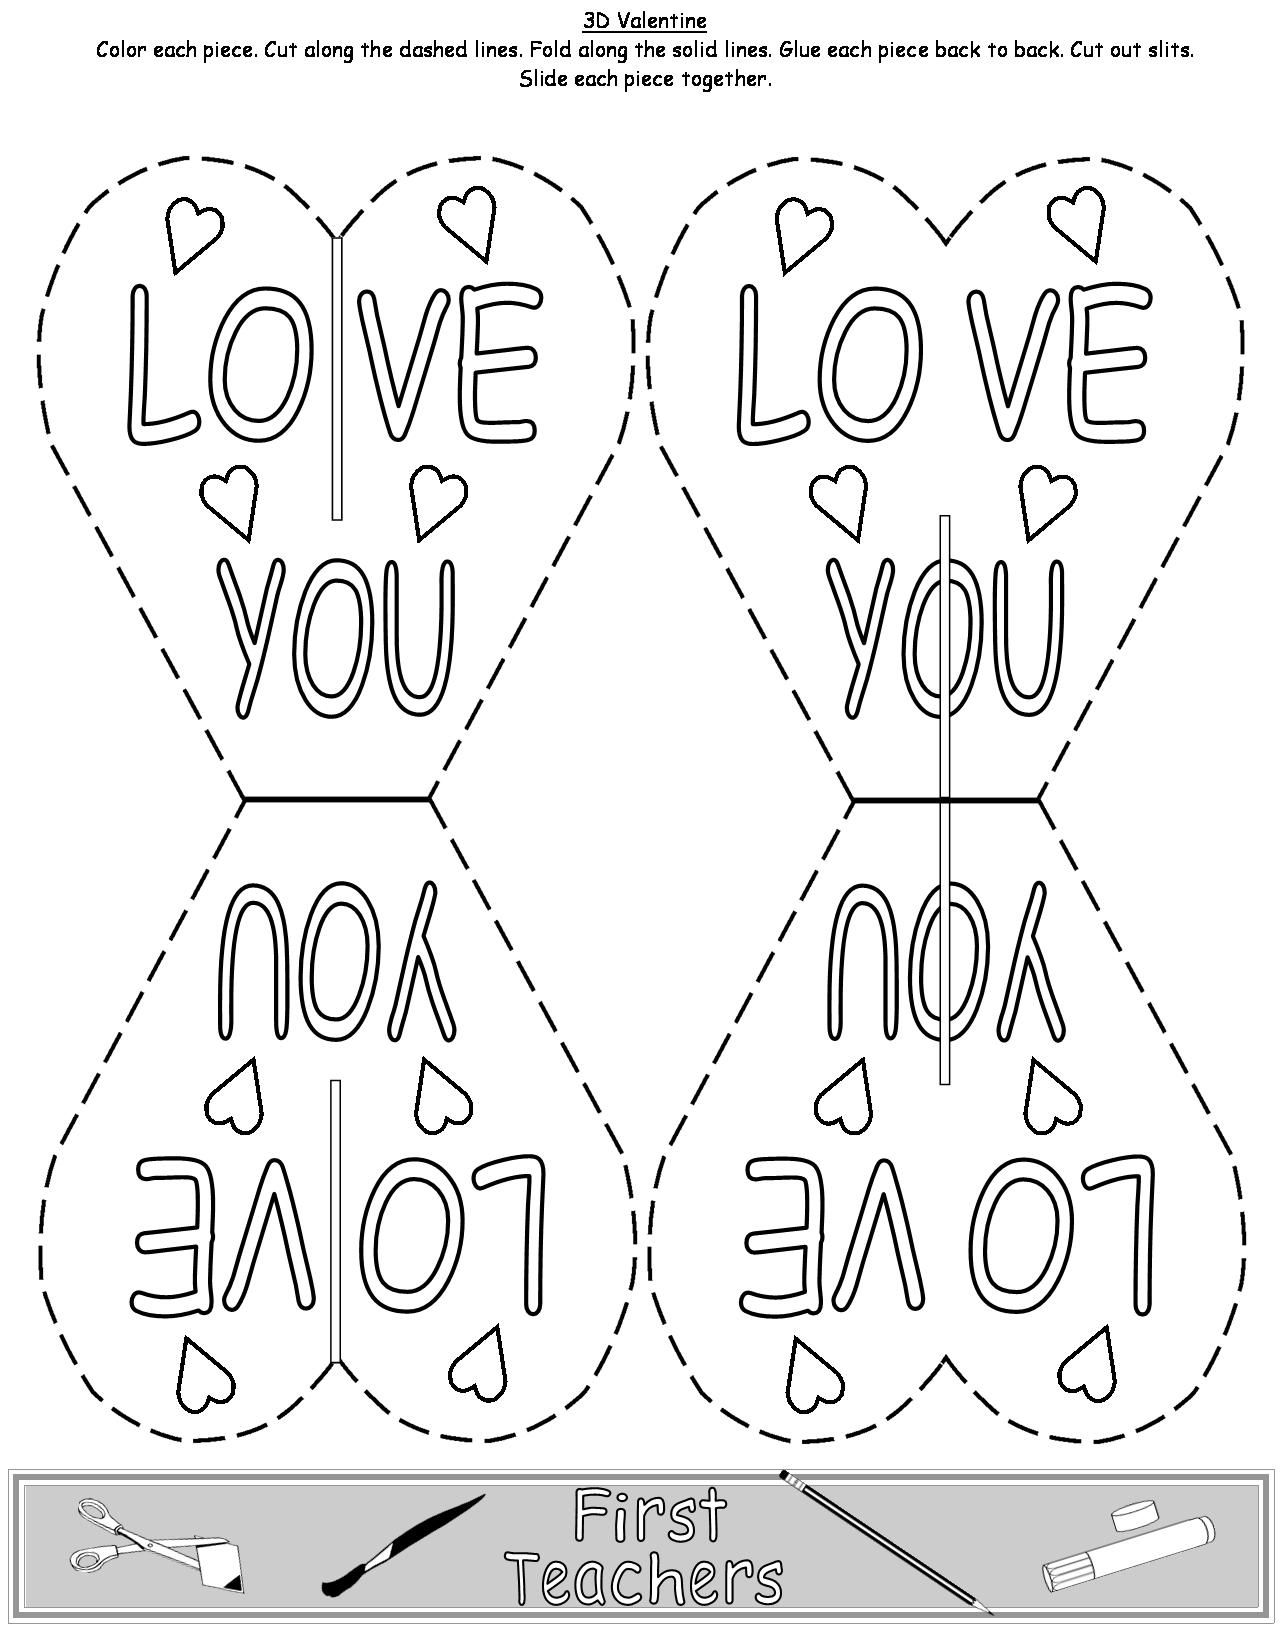 3 D Valentine S Day Card Kids Can Make And Give Copy And